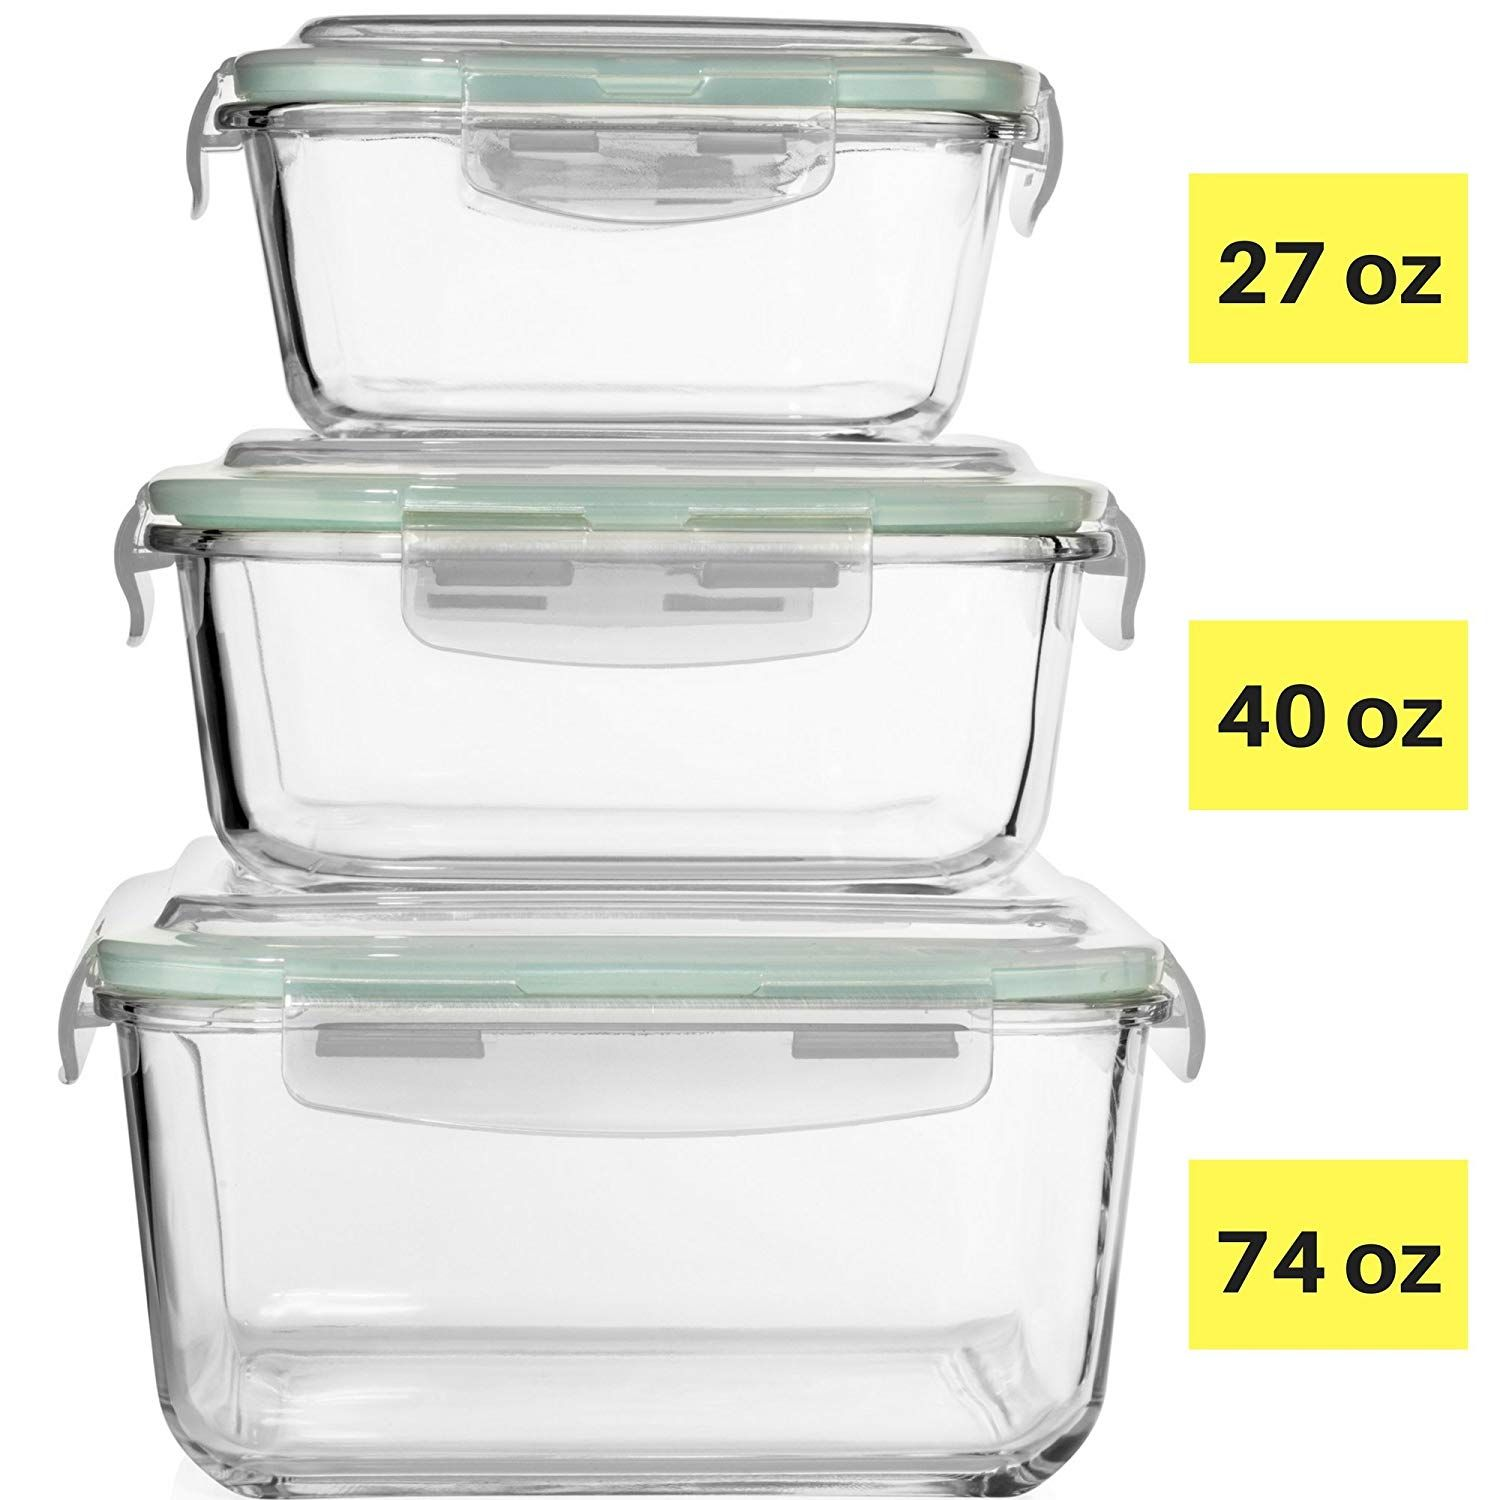 Extra Large Glass Food Storage Containers With Airtight Lid 6 Pc 3 Containers With Lids M Food Storage Containers Glass Food Storage Glass Storage Containers